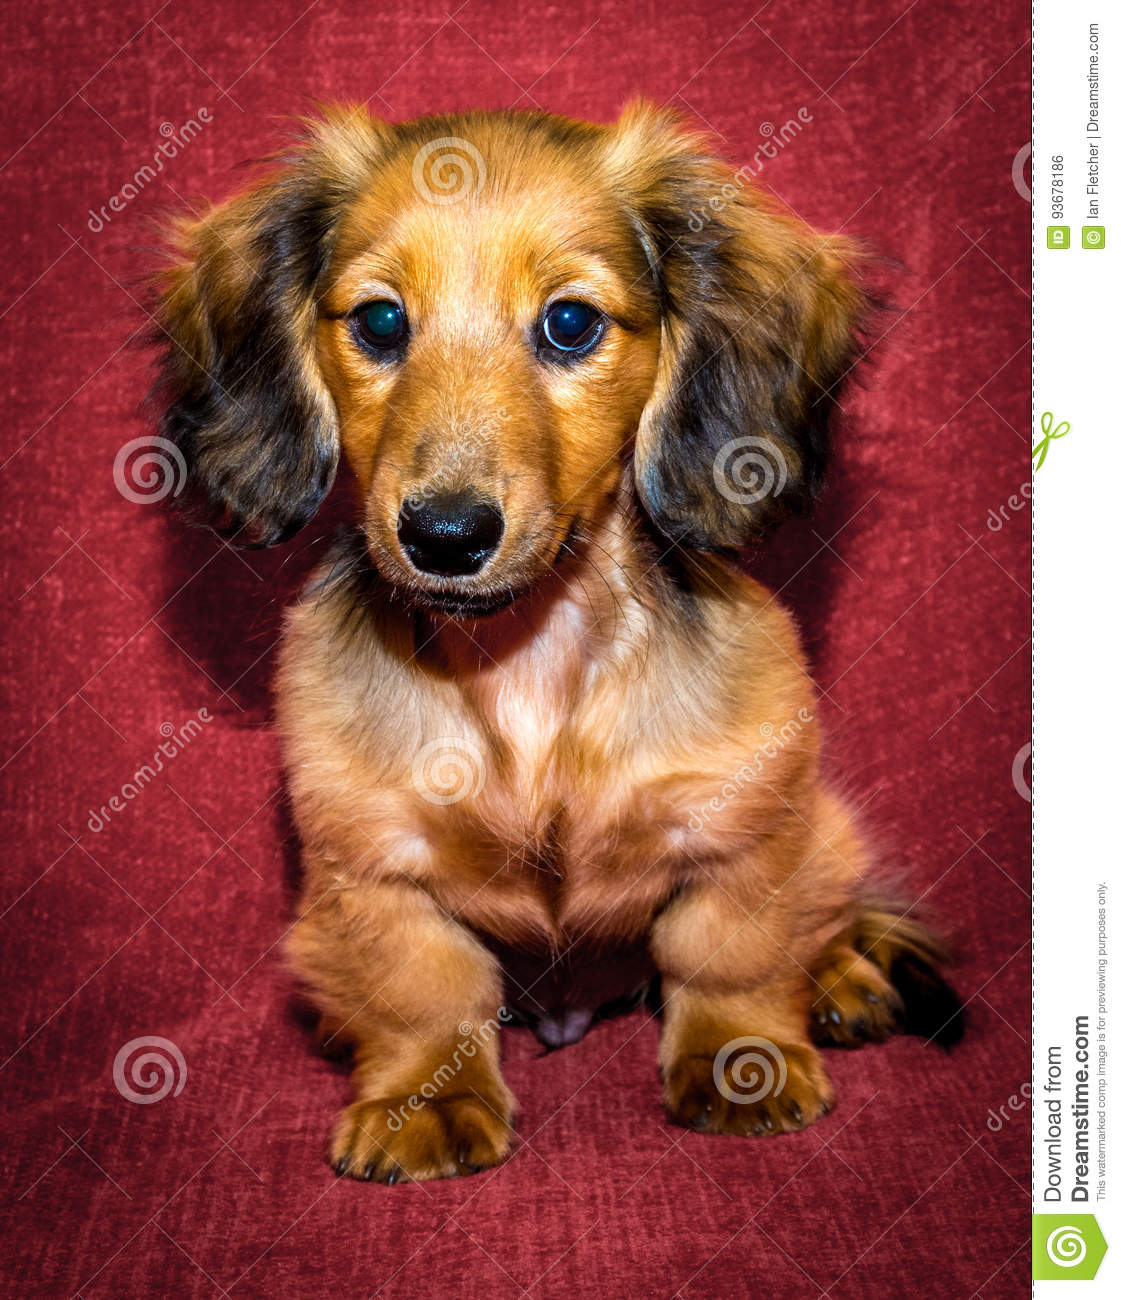 Miniature Long Haired Dachshund Stock Photo Image Of Background Cute 93678186